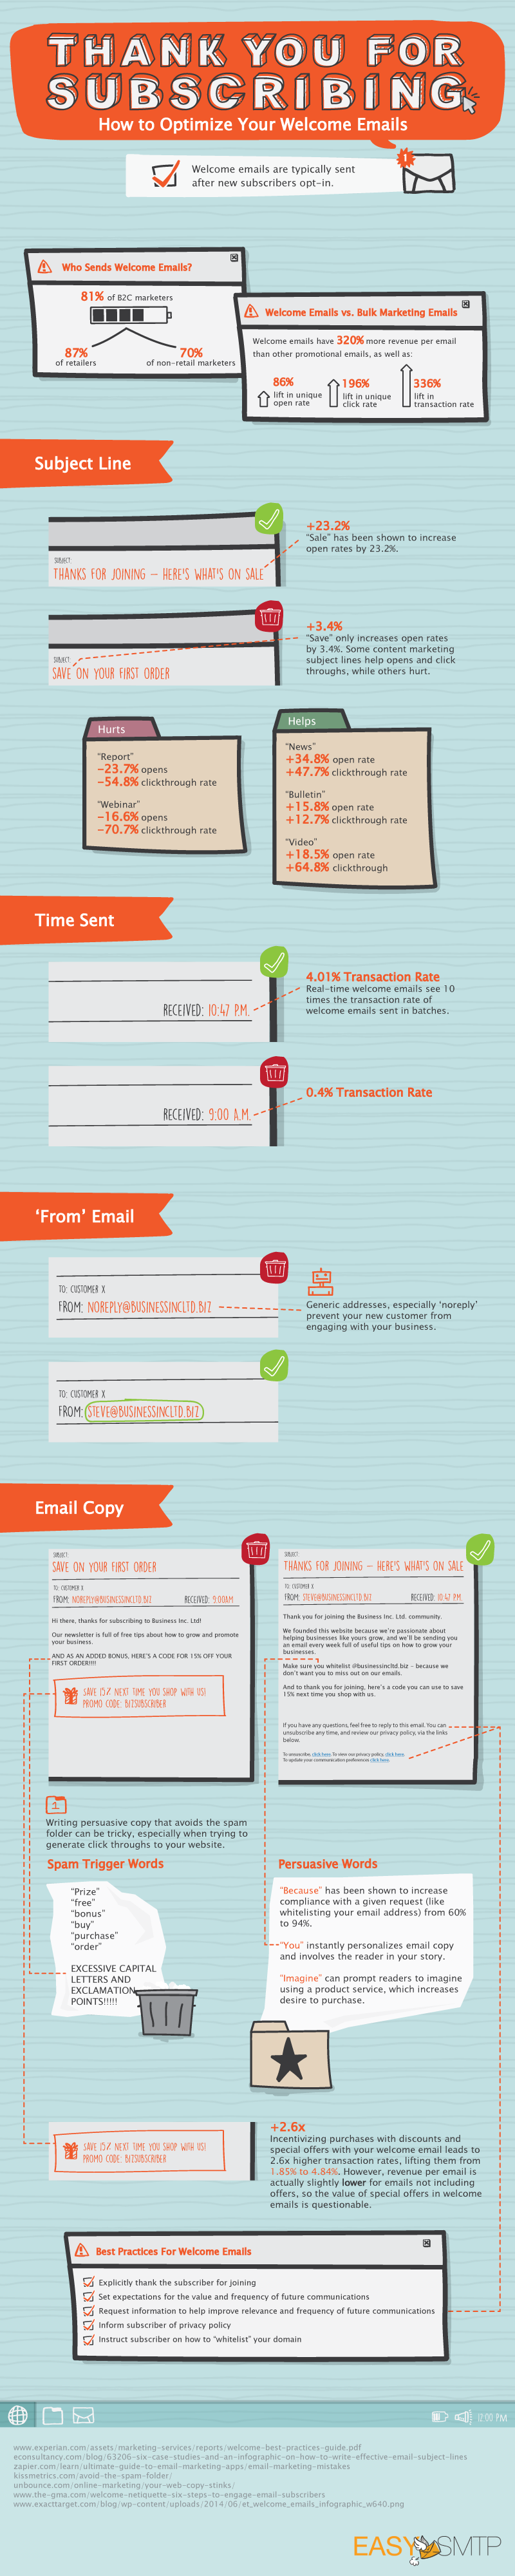 Optimize_Welcome_Emails